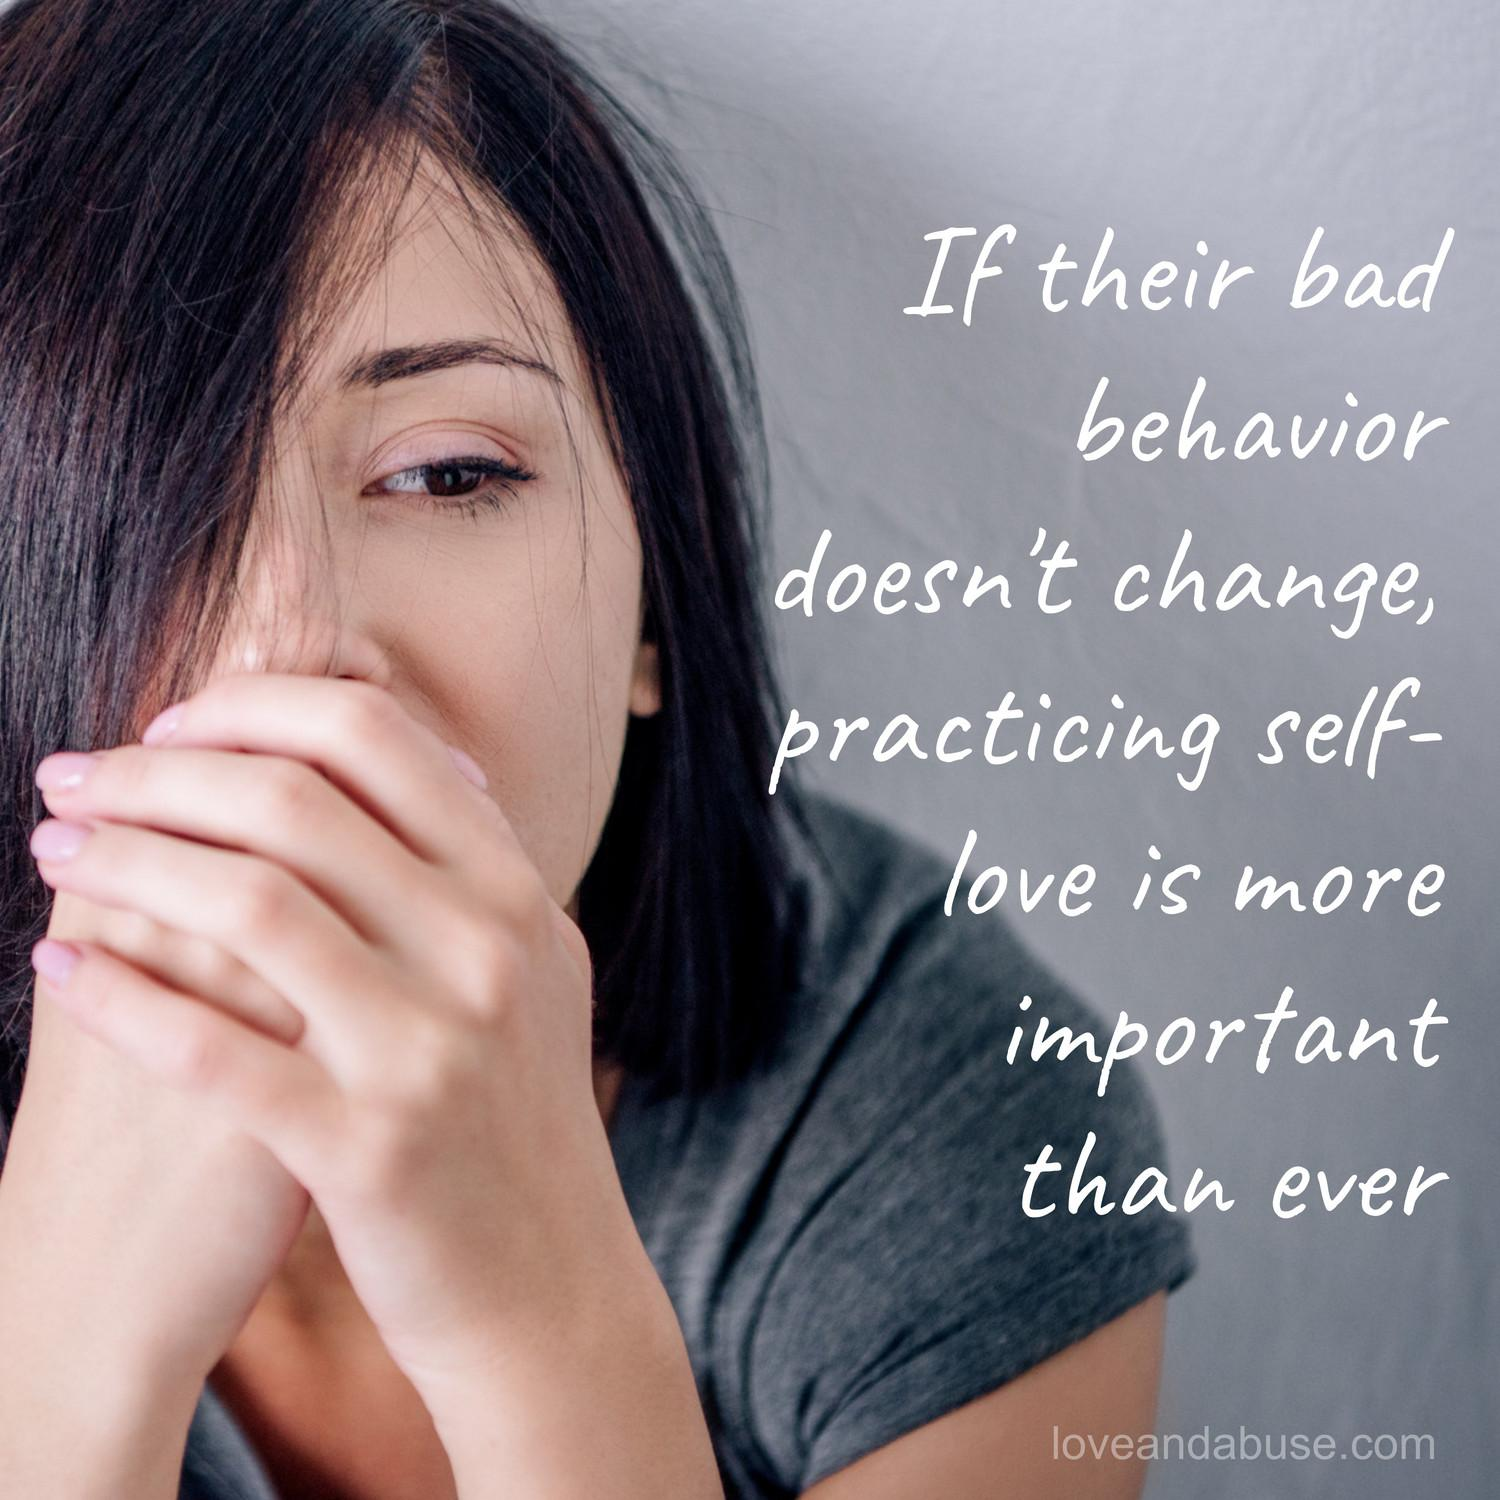 If you've tried everything to stop the hurtful behavior, what's next?